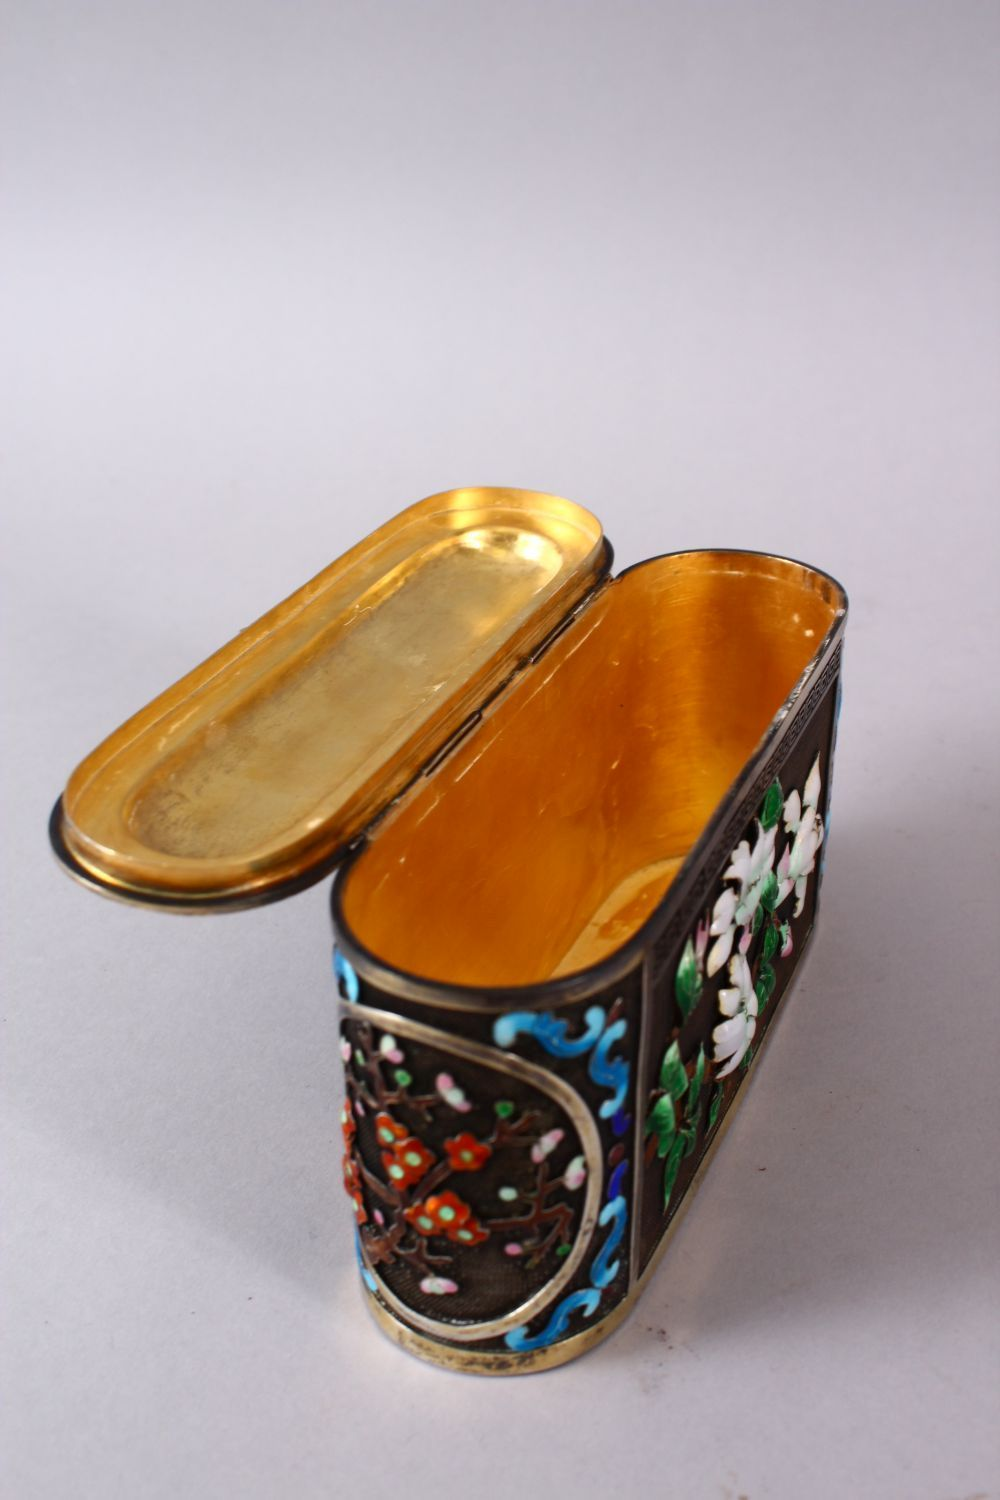 A CHINESE SILVER & ENAMEL LIDDED BOX, with enamel decoration of native flora, base marked silver, - Image 8 of 10